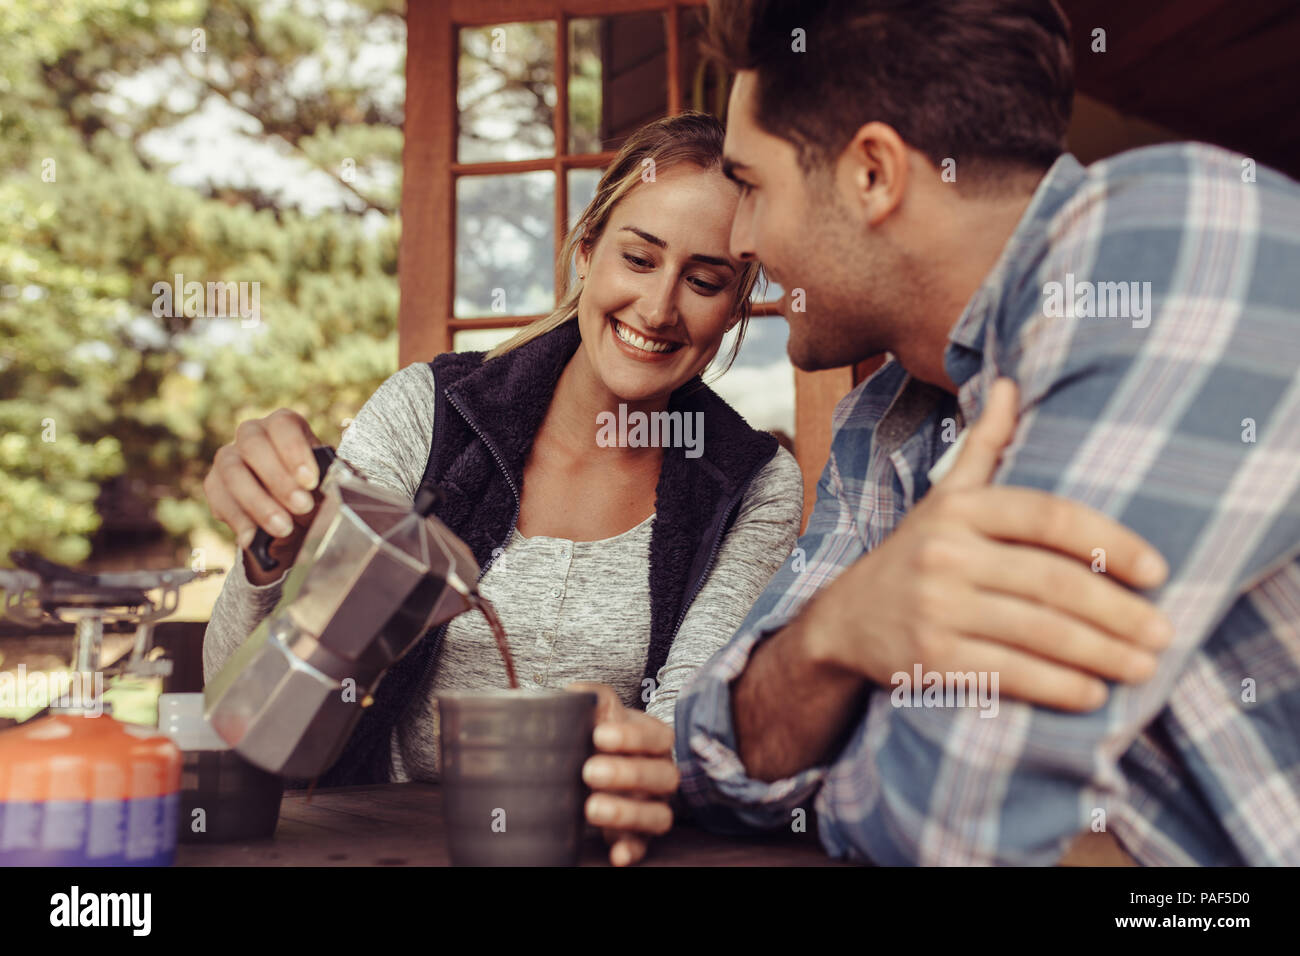 Happy young woman serving coffee to her boyfriend. Couple having coffee in the morning. Woman pouring coffee in the cup of her boyfriend. - Stock Image